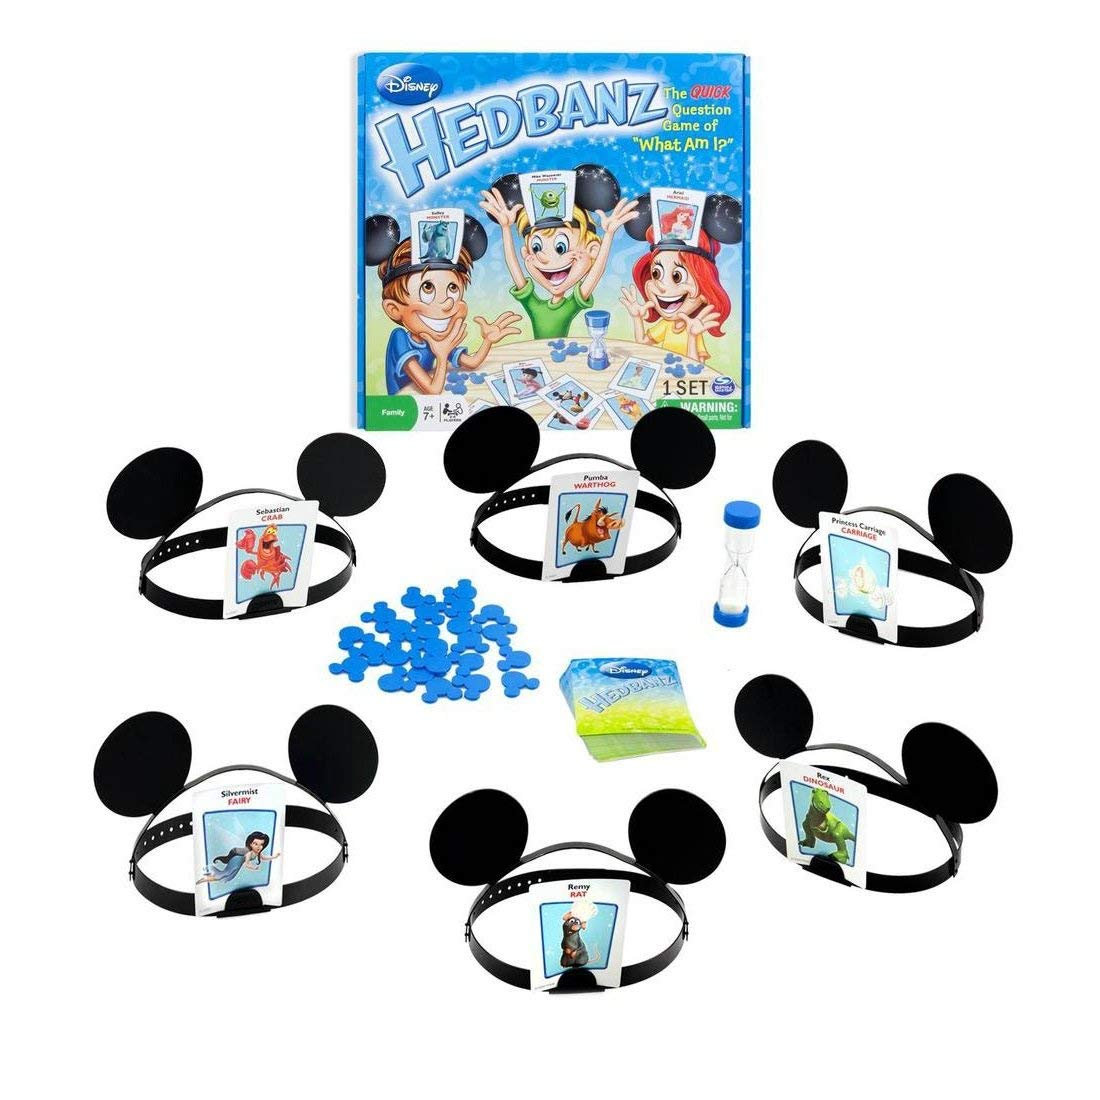 disney headbanz board game